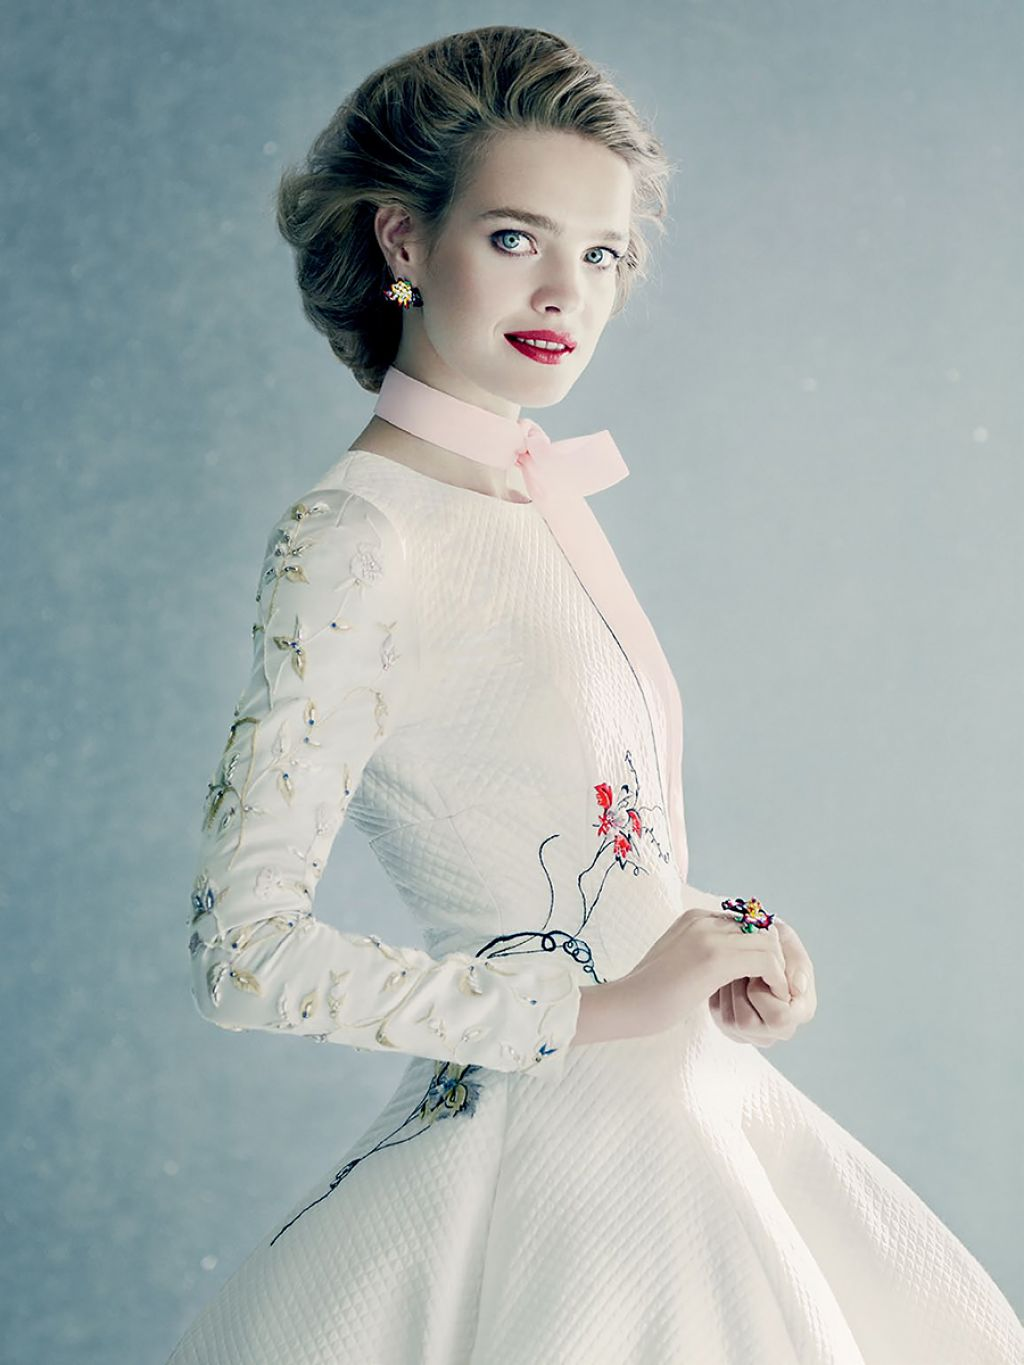 Natalia Vodianova - Photoshoot for Vogue Magazine (Russia) December 2014